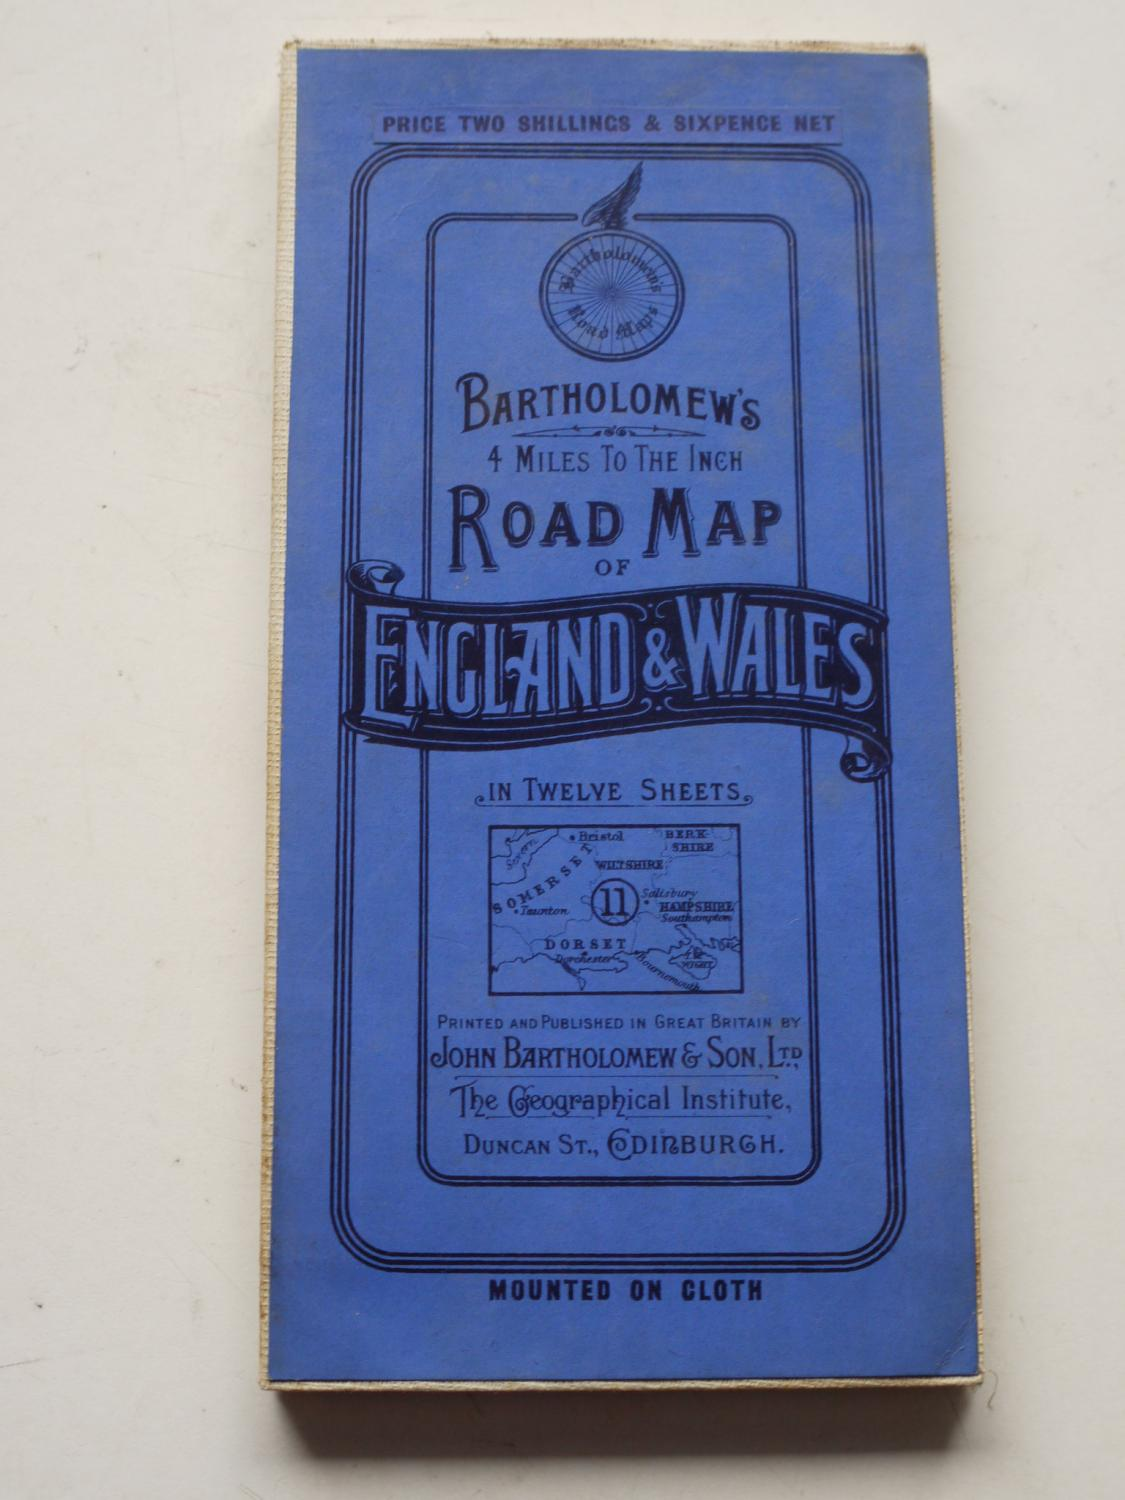 Driving Map Of England And Wales.Bartholomew S Road Map Of England Wales